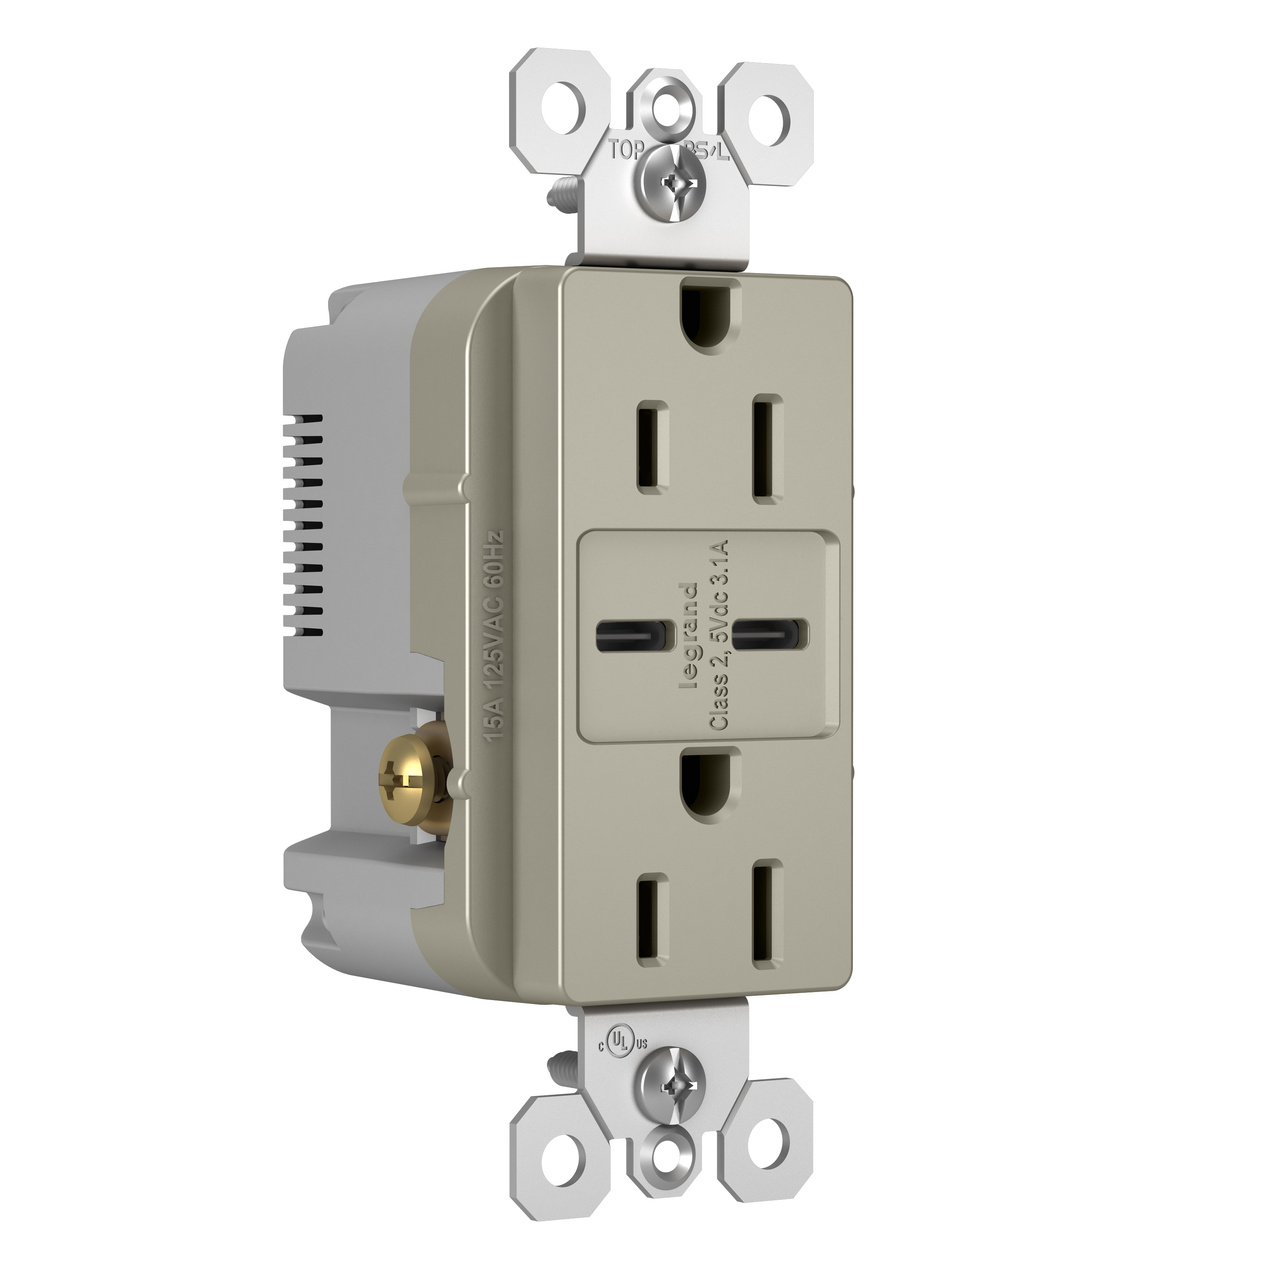 Type C/C USB Chargers with Duplex 15A Tamper-Resistant Outlet, Nickel